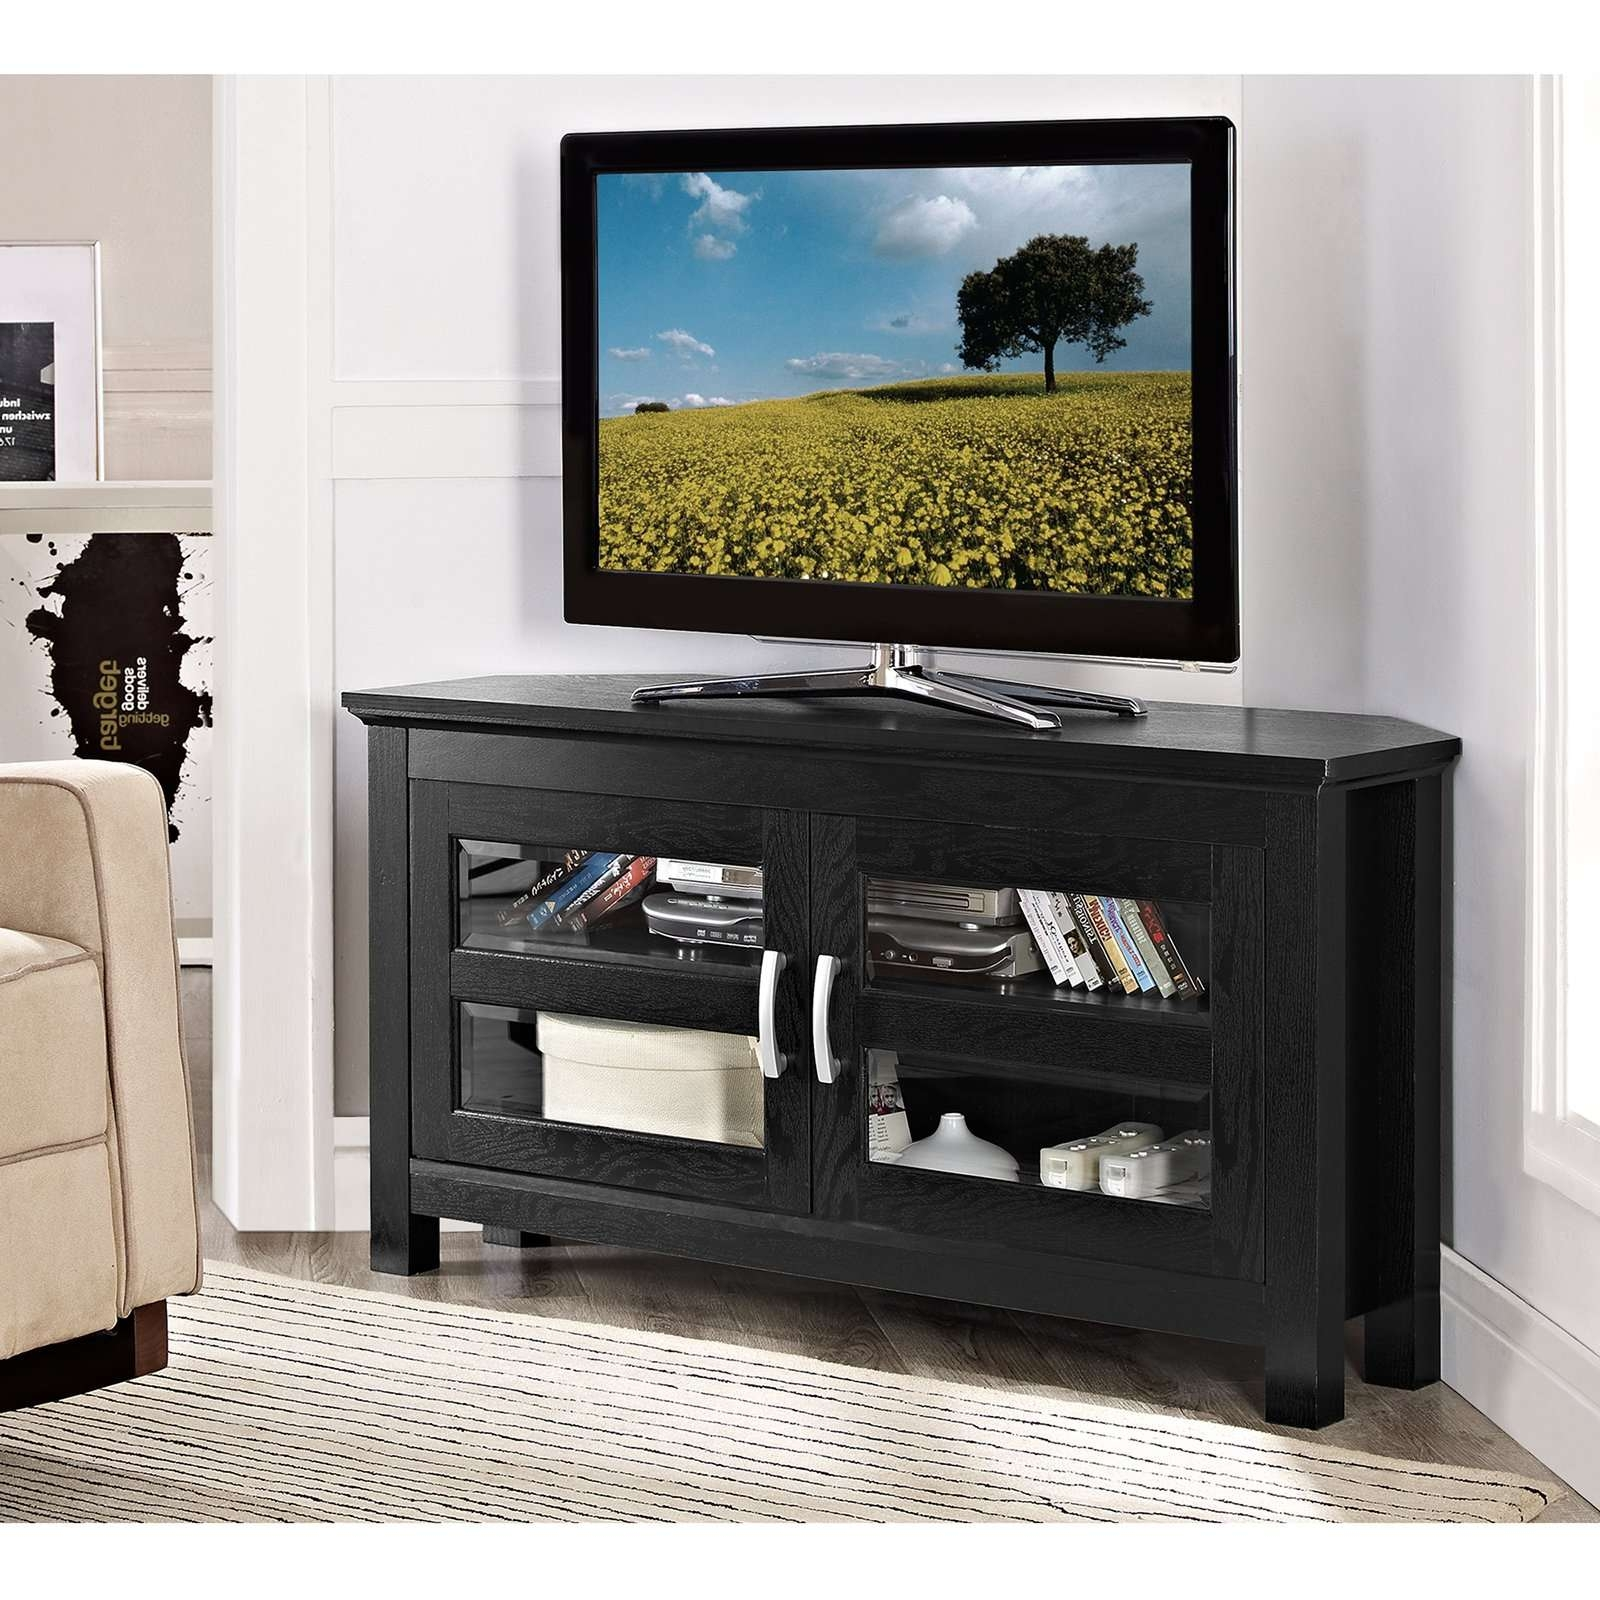 Corner Black Wooden Tv Stand With Storage And Double Glass Doors Pertaining To Double Tv Stands (View 2 of 15)